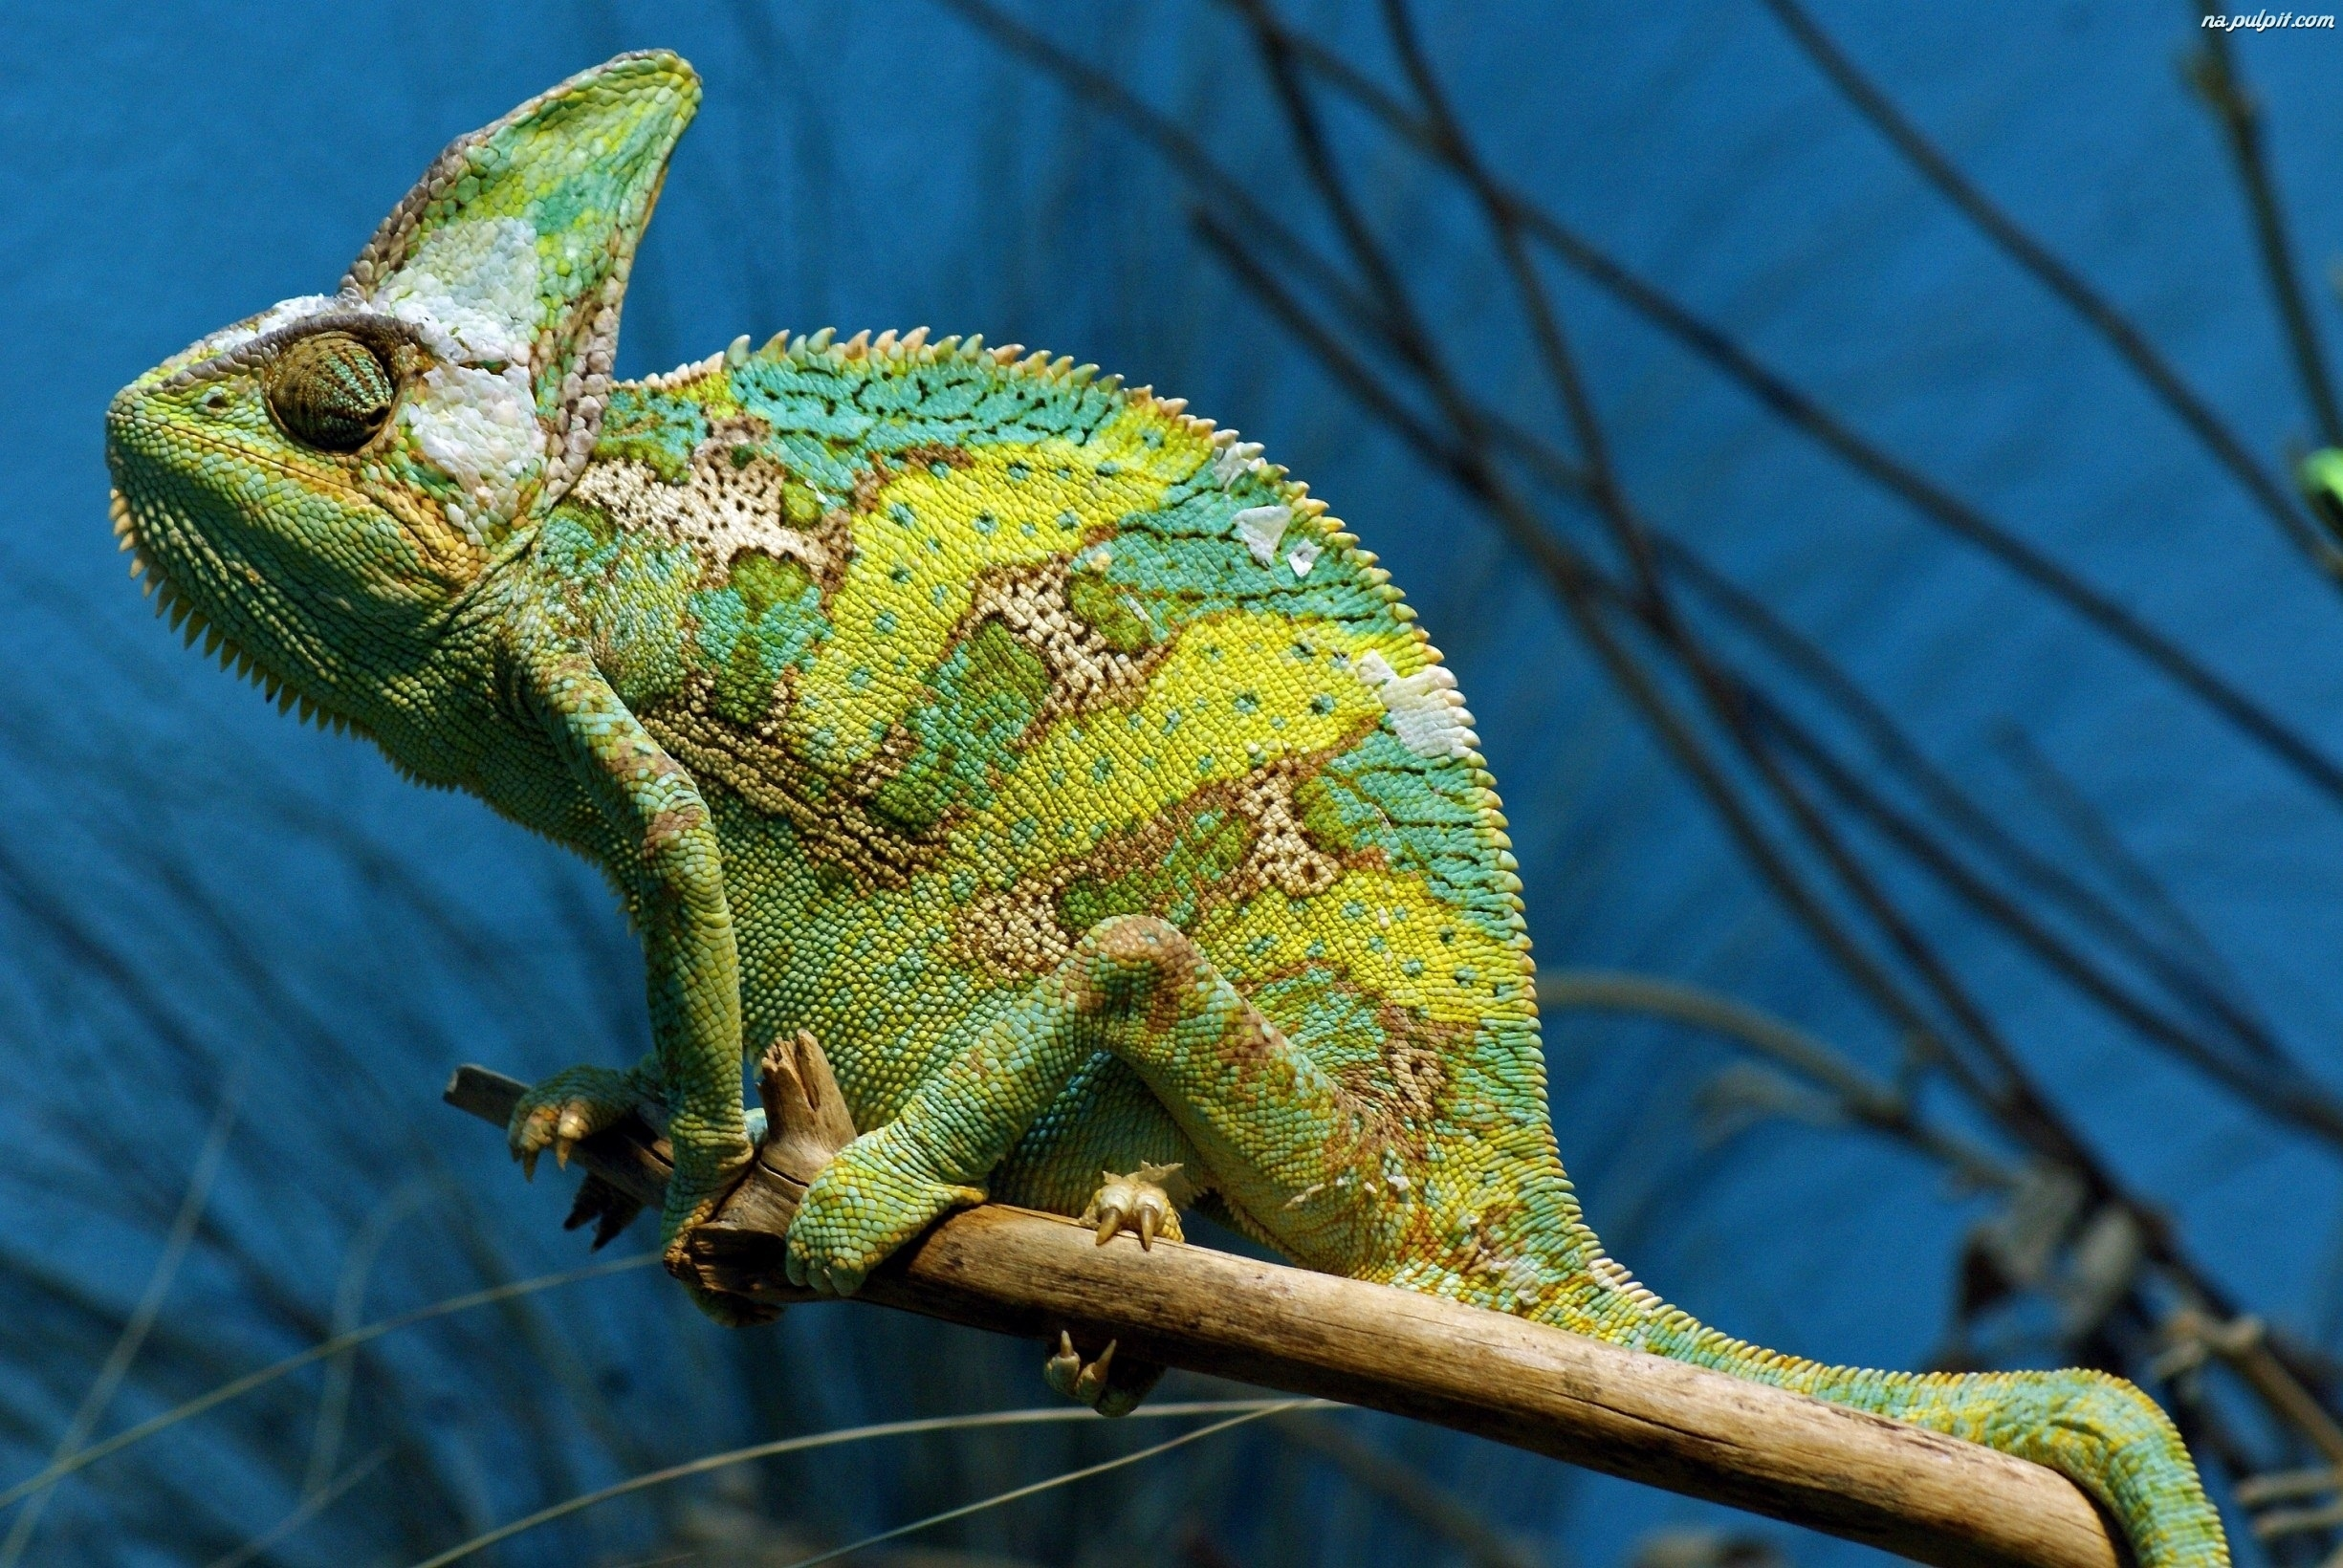 reptiles animal chameleon frog - photo #15